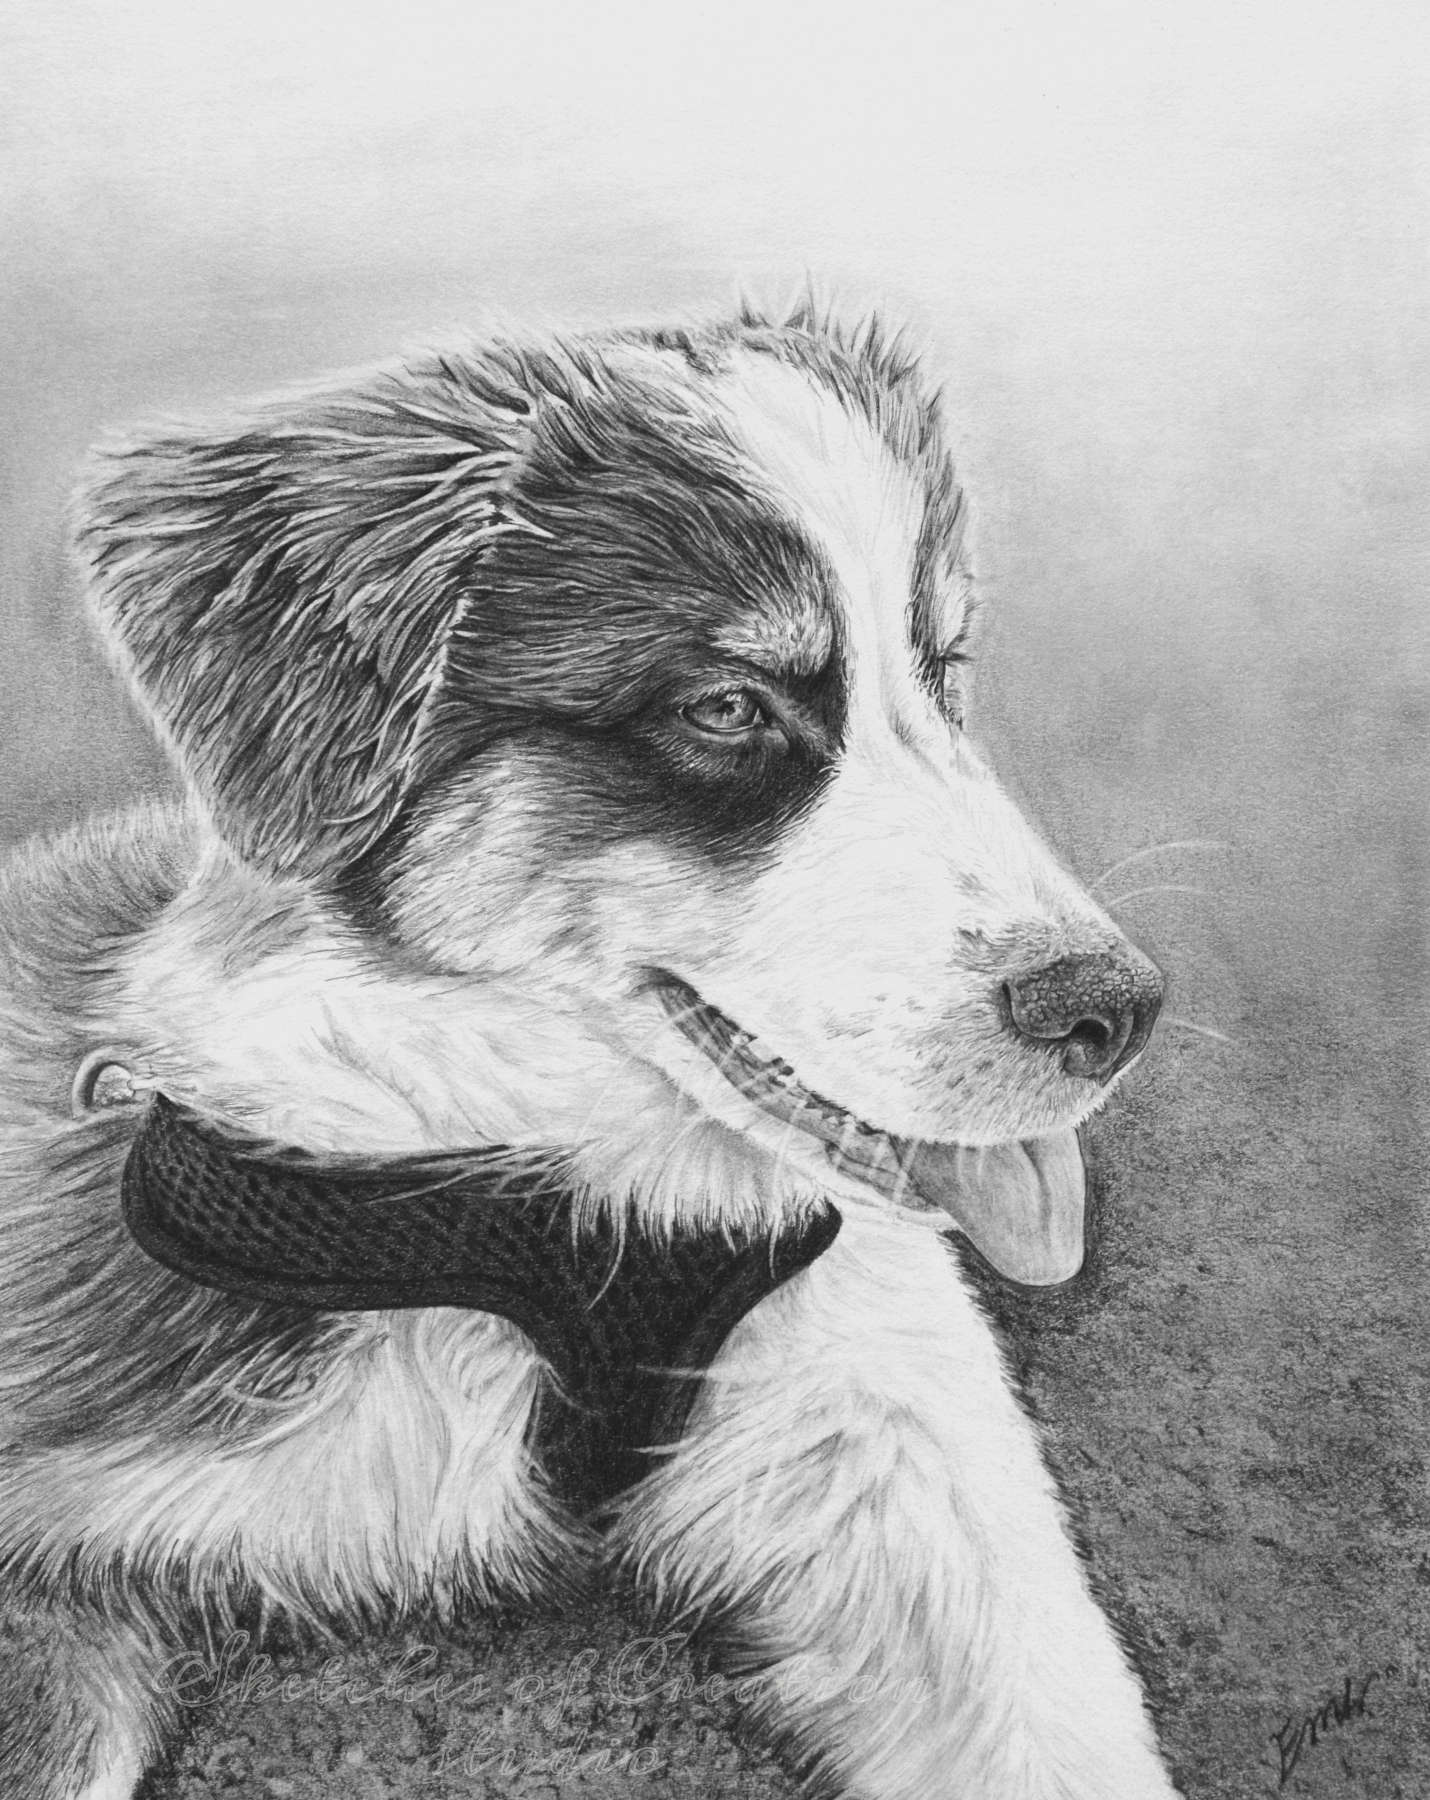 'Liberty' a drawing of an Australian Shepherd puppy. 8x10 inches. Completed July 2019